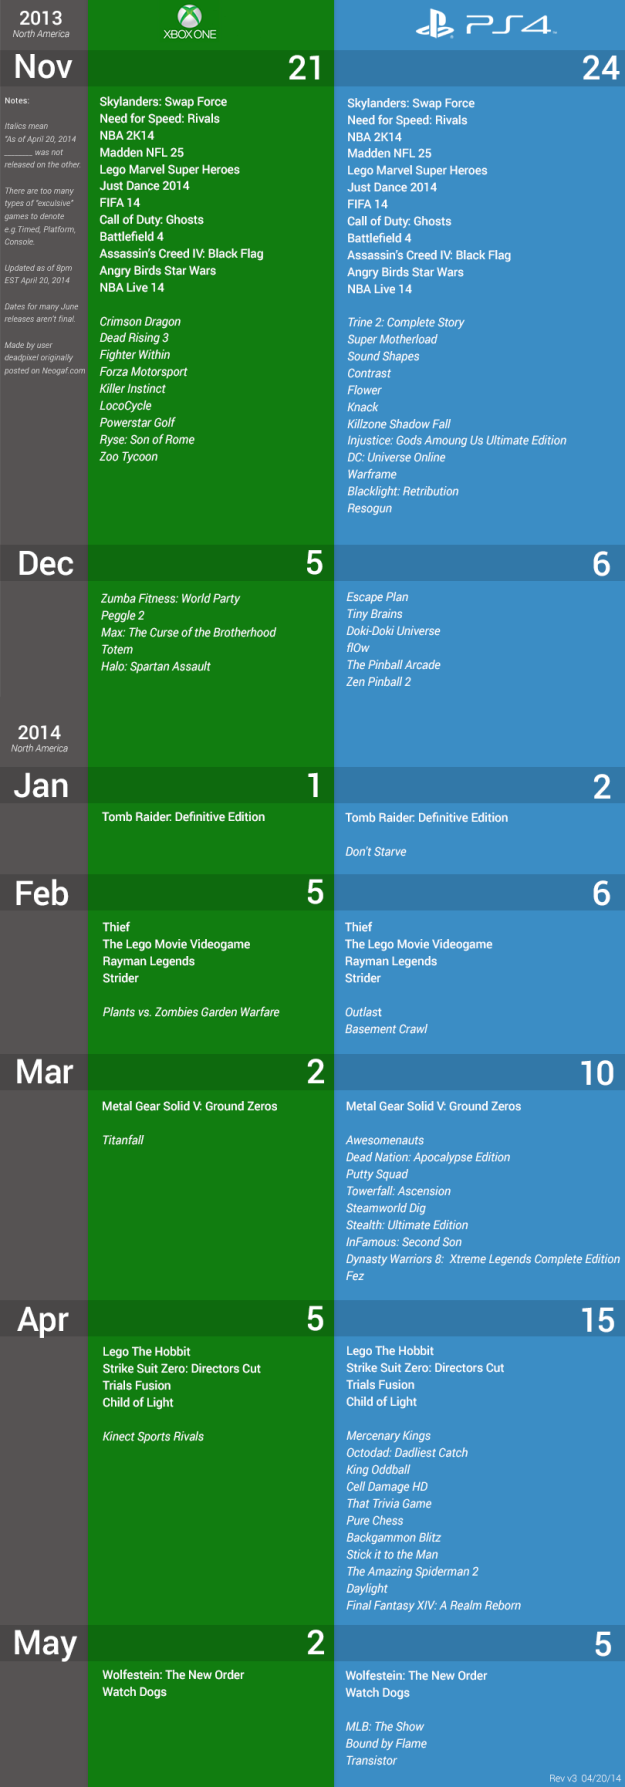 PS4 vs. Xbox One game releases puts Sony way ahead of Microsoft | BGR